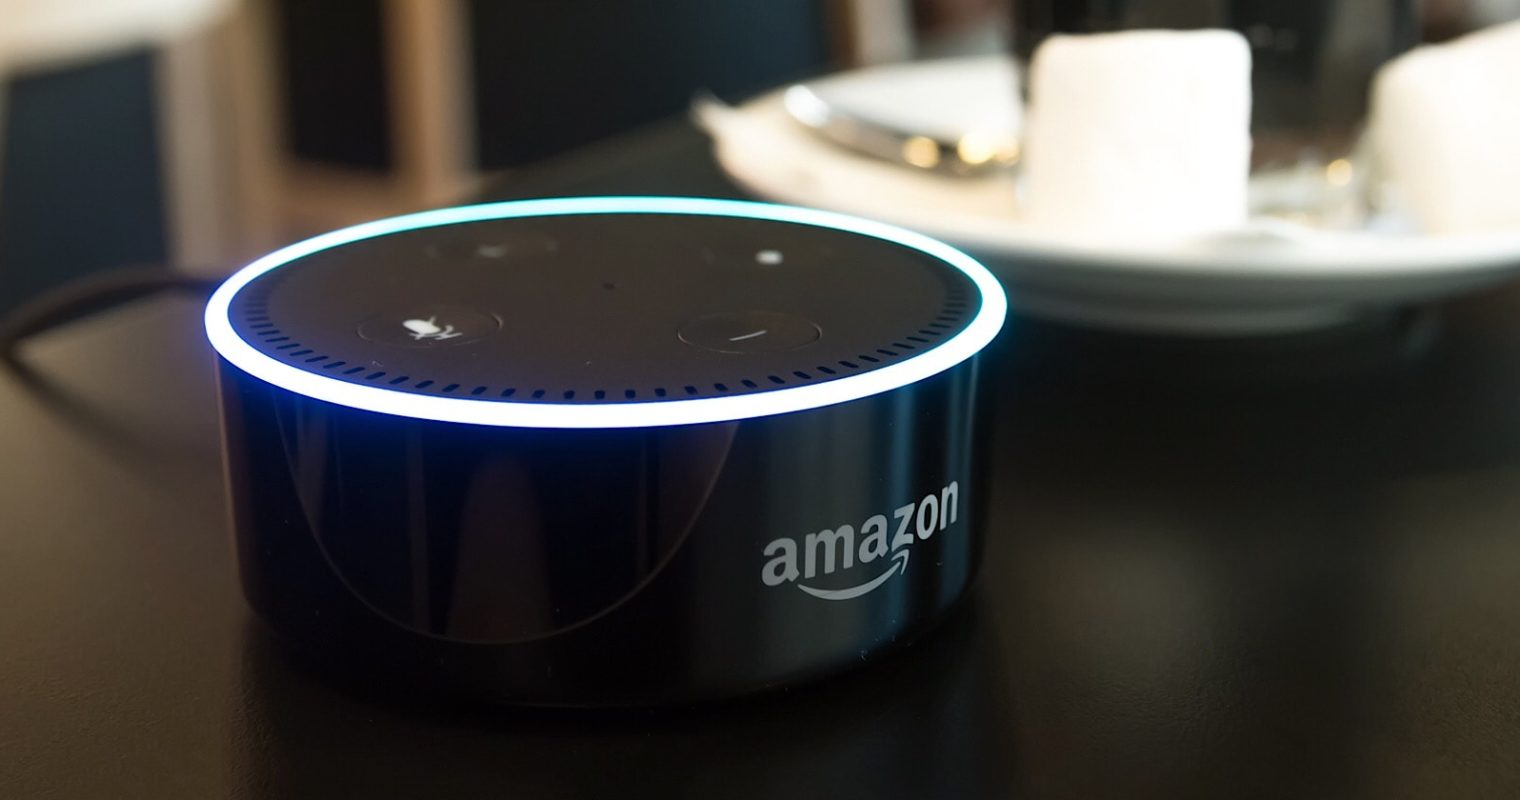 Yext Begins Submitting Local Business Listings to Amazon Alexa